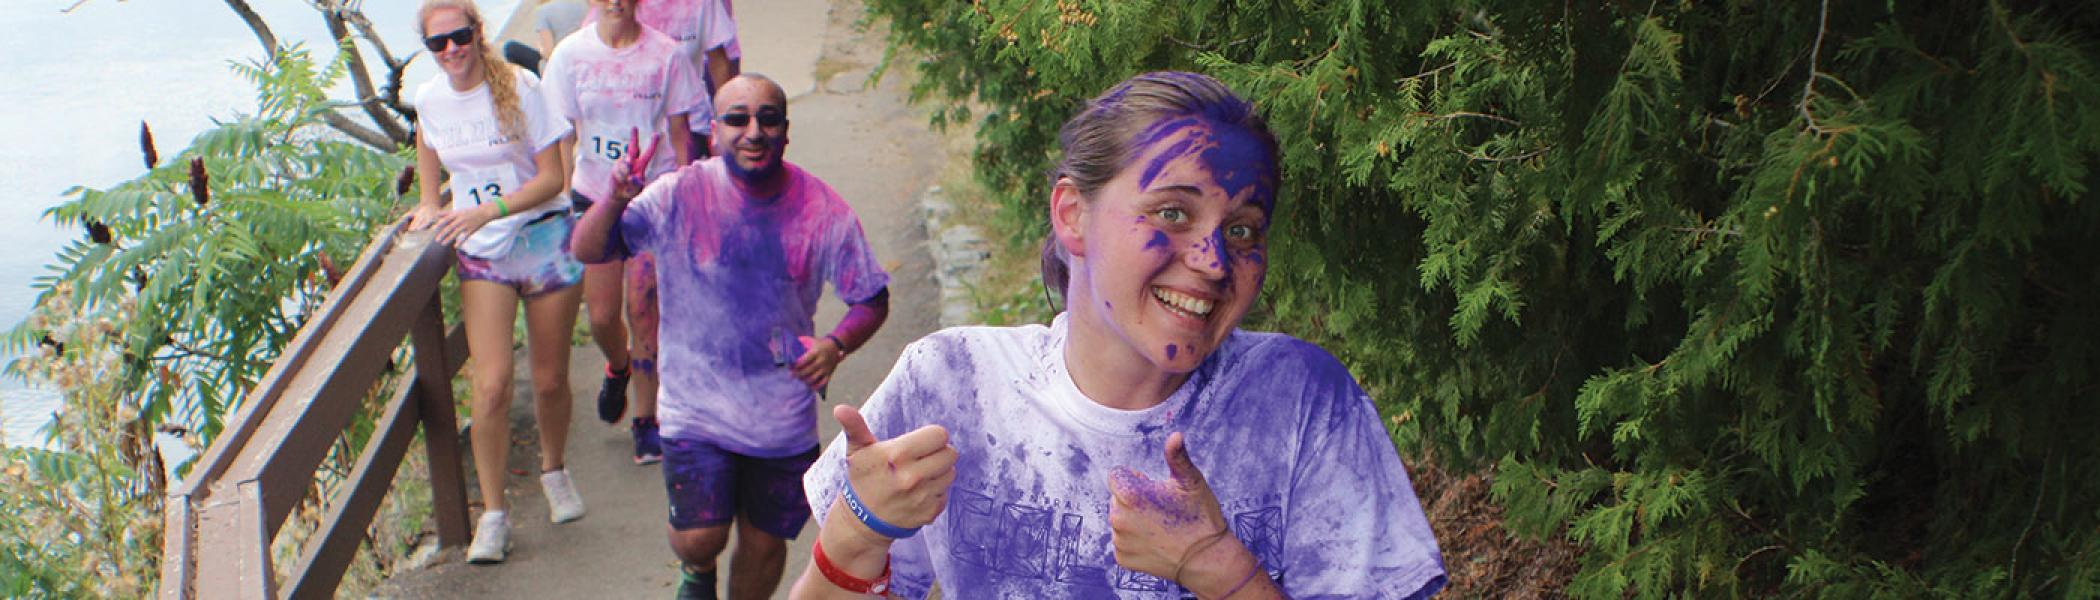 International students participate in Colour Run